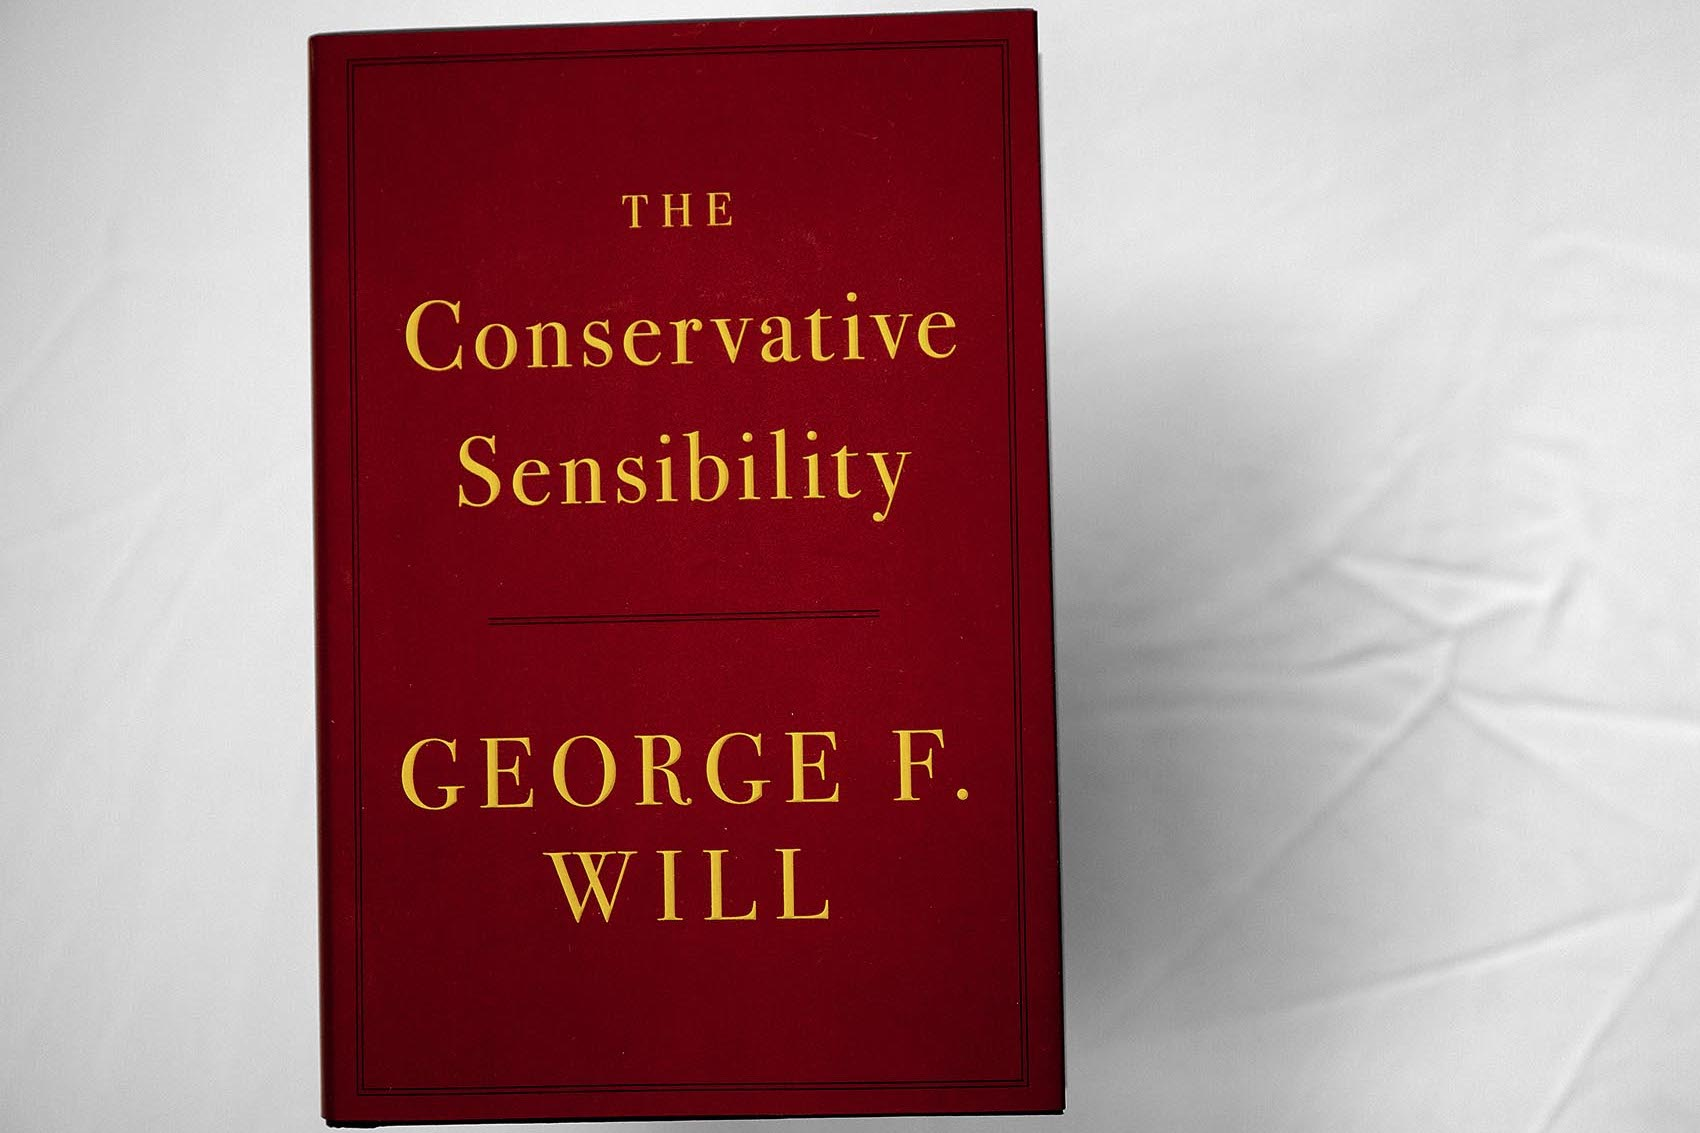 In New Book, George Will Defends Conservatism — But Not